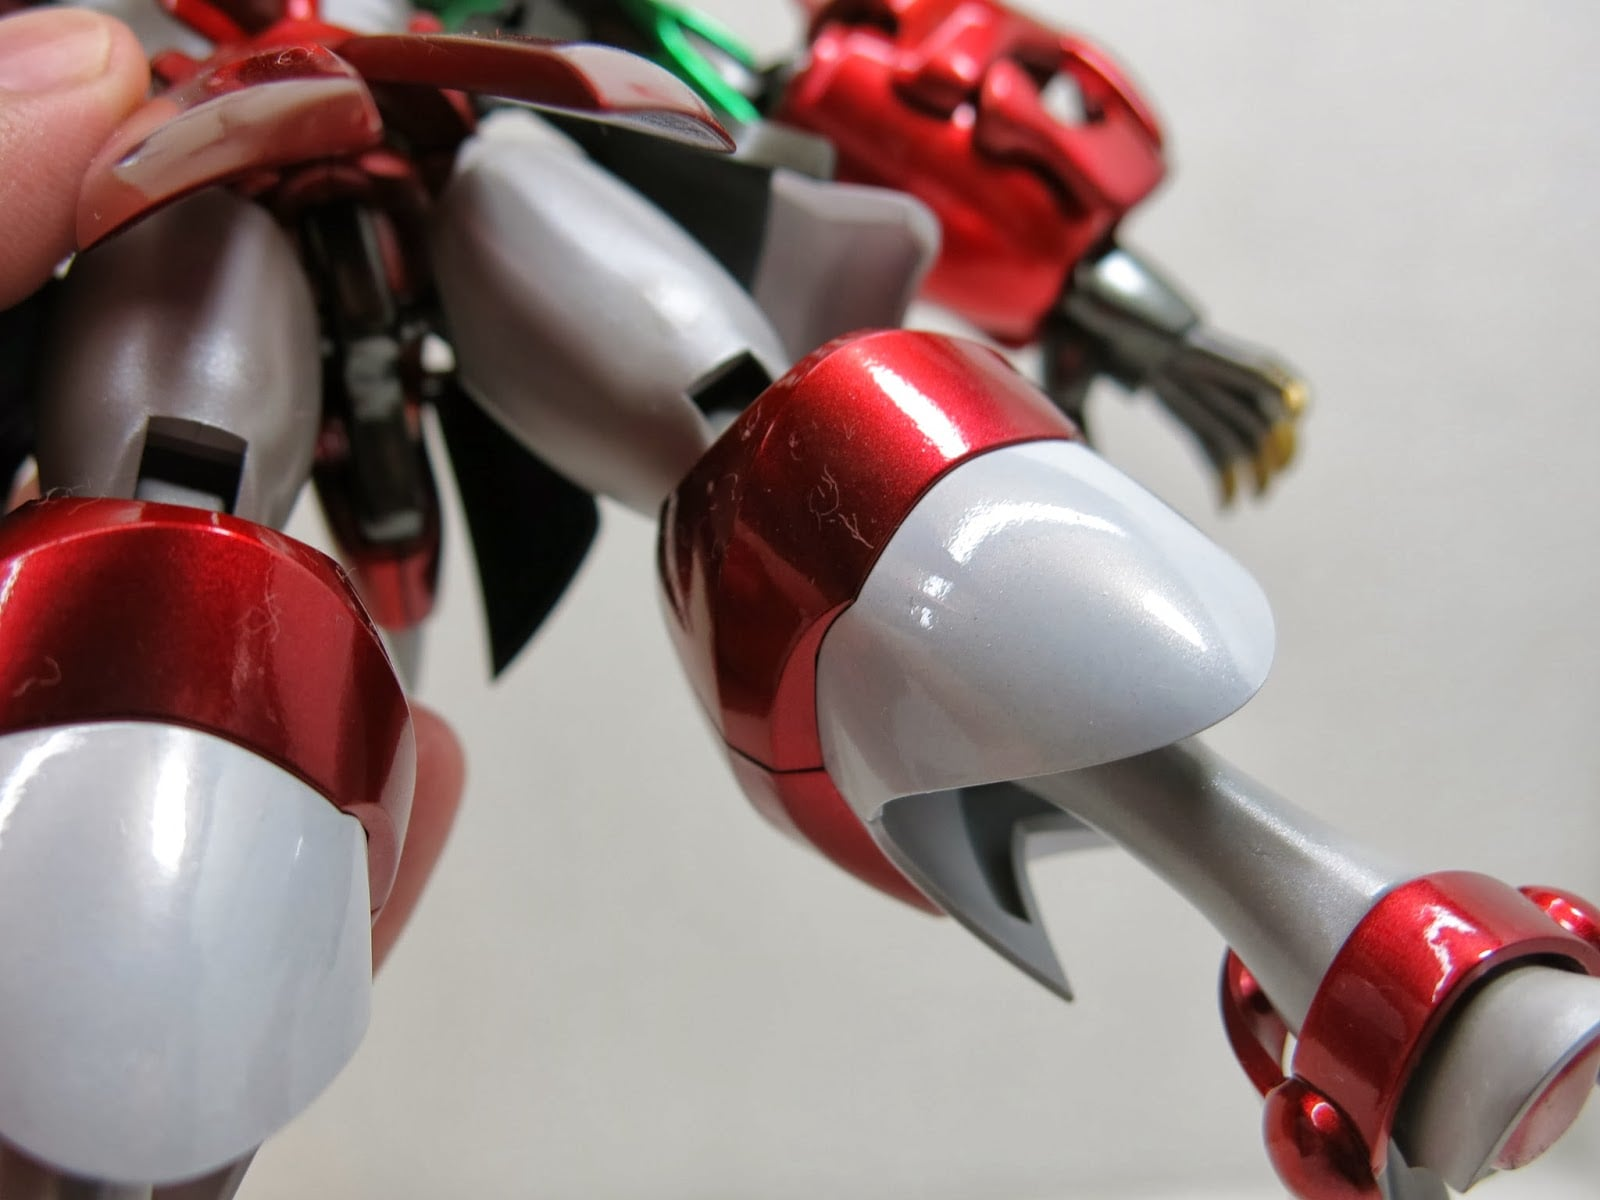 Toy Model Ghost Mask 02 約瑟夫模型:鬼面 SRG-S034~PERSON-LICHKEIT 超級機器人大戰 OG